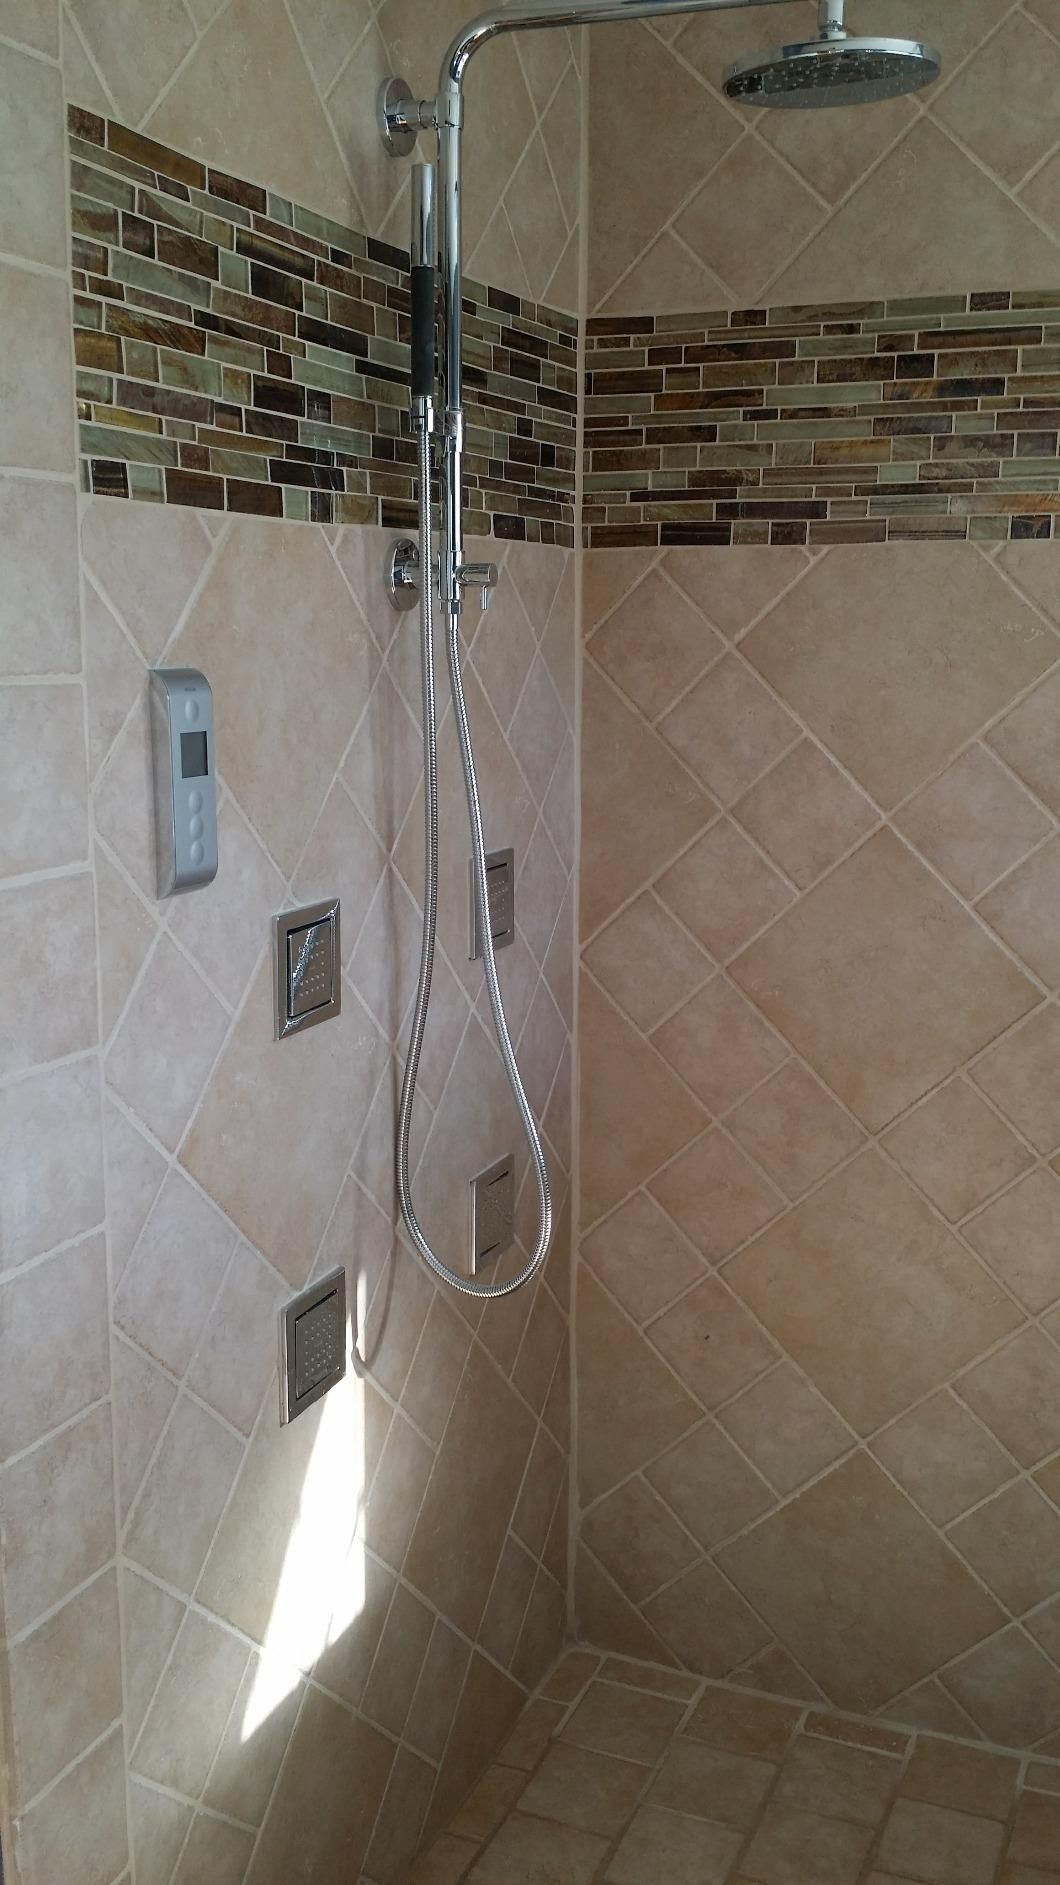 This Kholer water tile body spray is awesome ~ http://walkinshowers ...